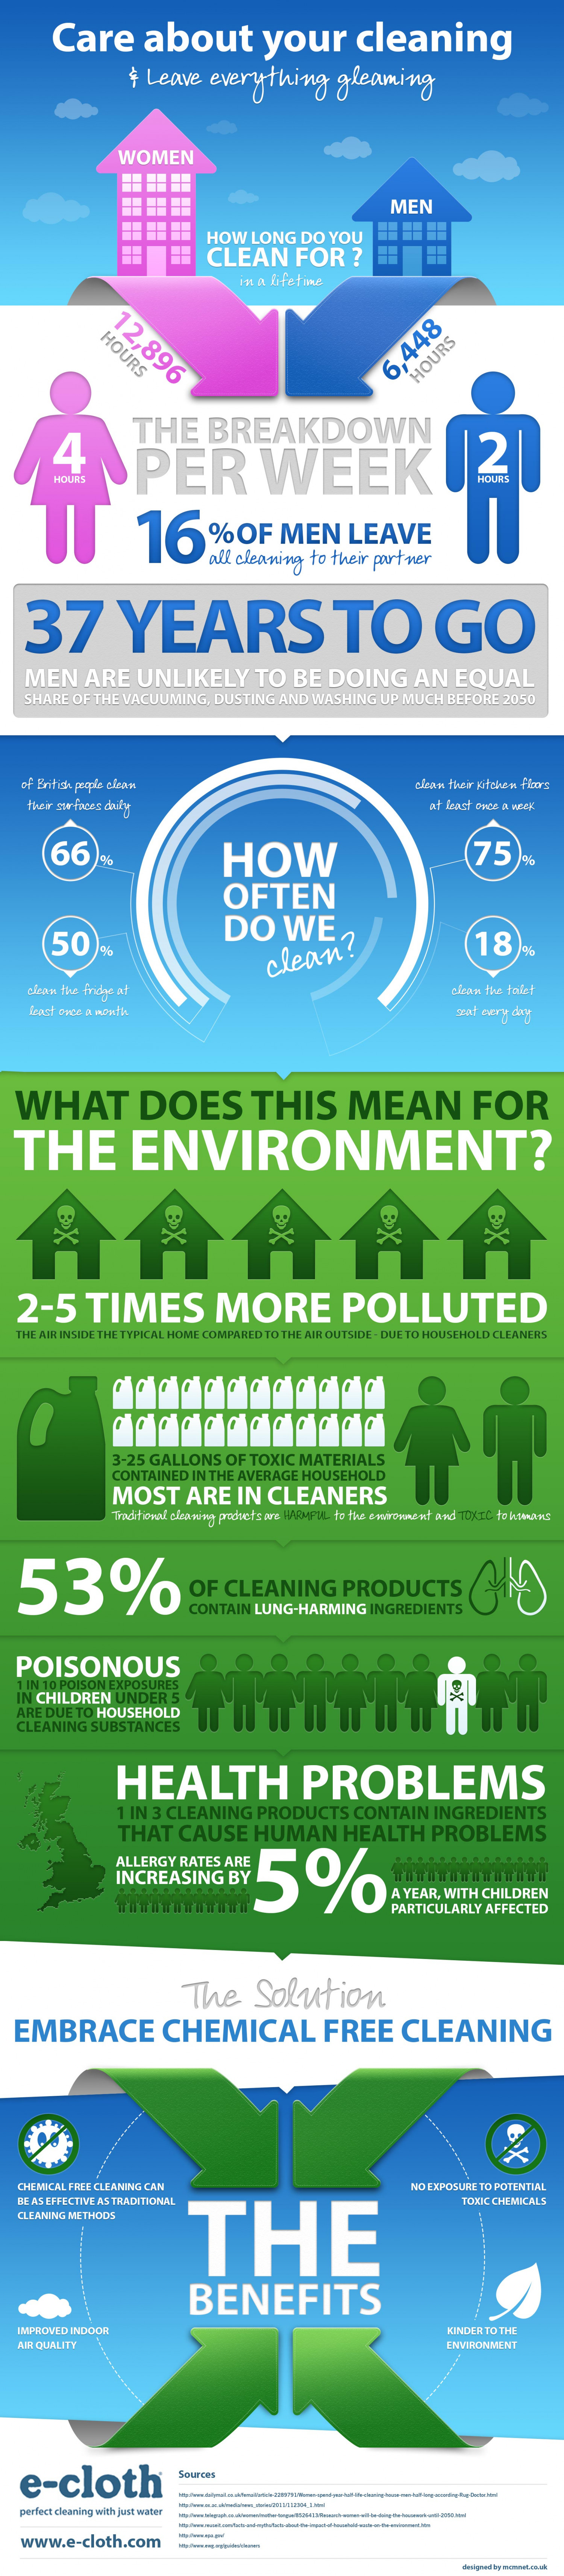 Care About Your Cleaning Infographic